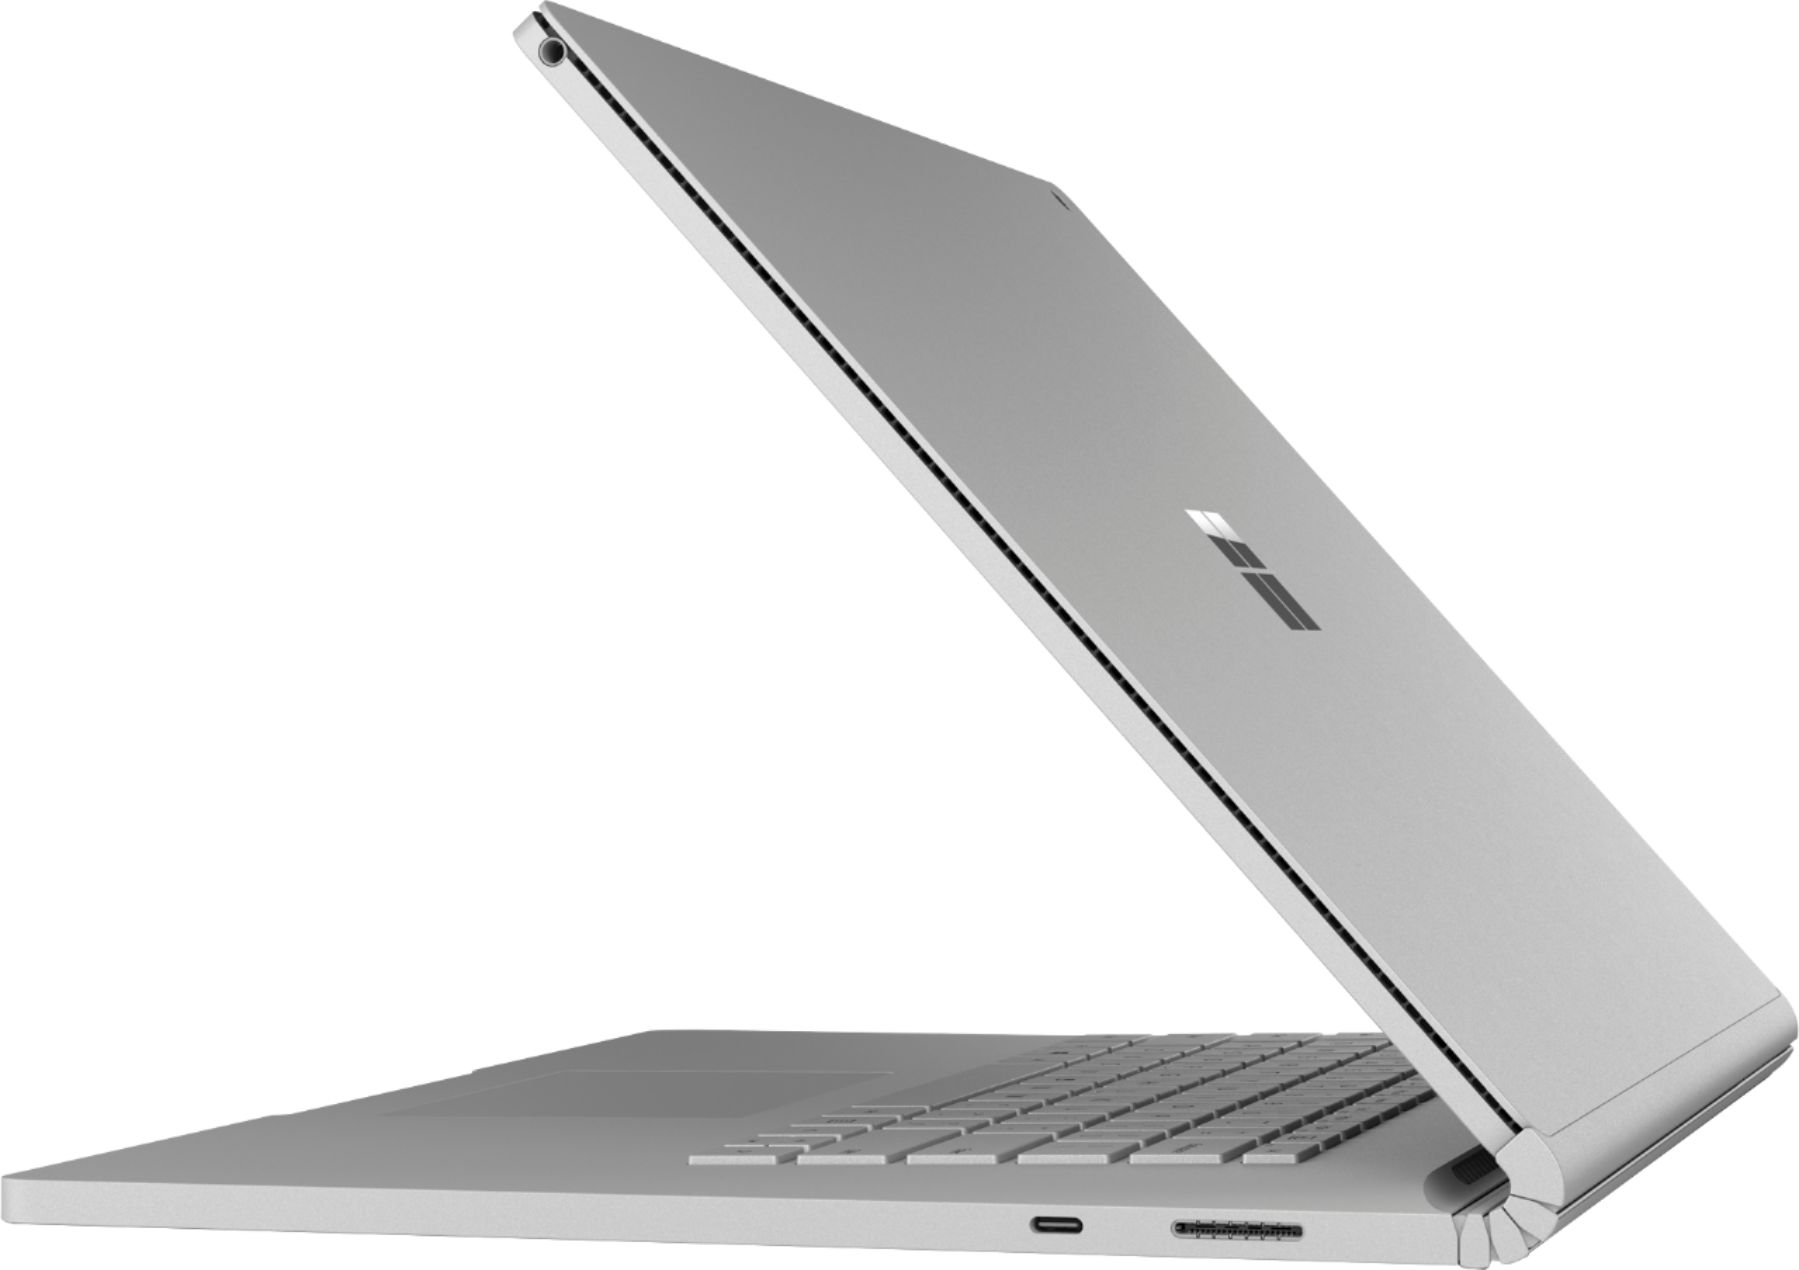 """Left Zoom. Microsoft - Geek Squad Certified Refurbished Surface Book 2 - 15"""" Touch-Screen Laptop - Intel Core i7 - 16GB Memory - 1TB GB SSD - Platinum."""